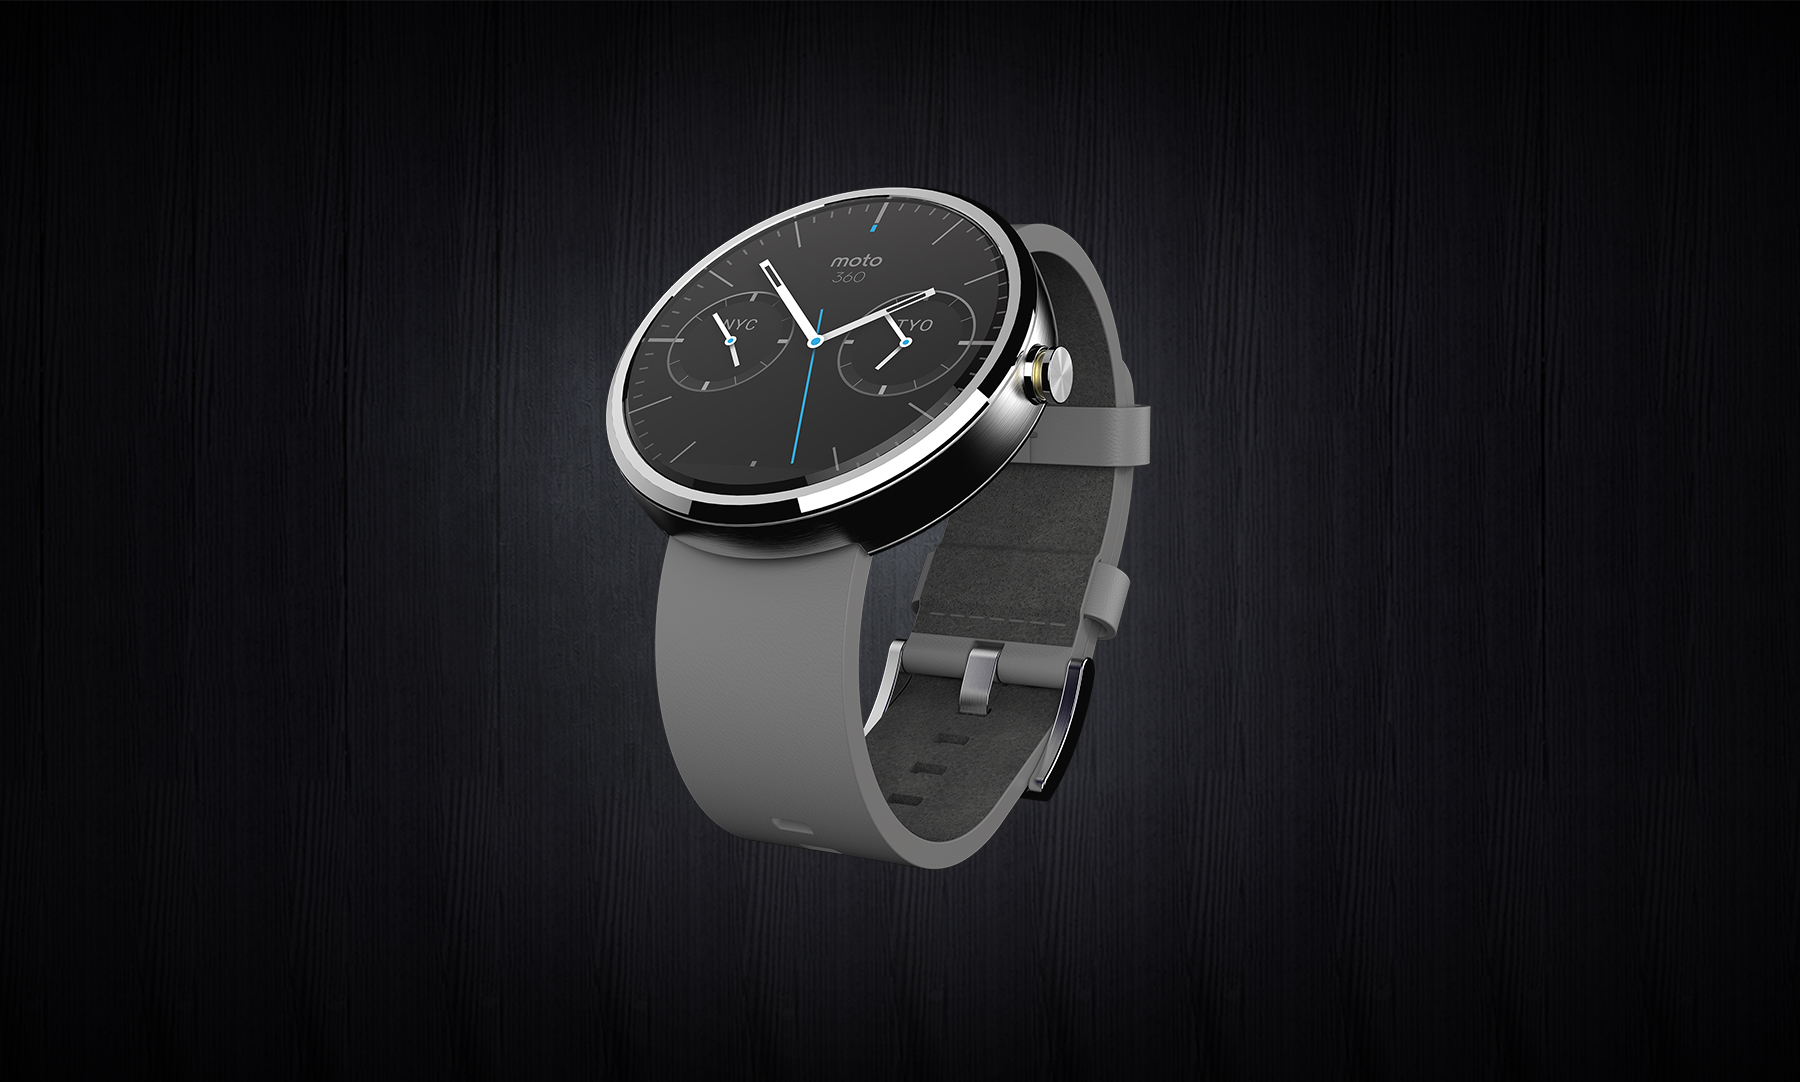 Moto 360 With Leather Band